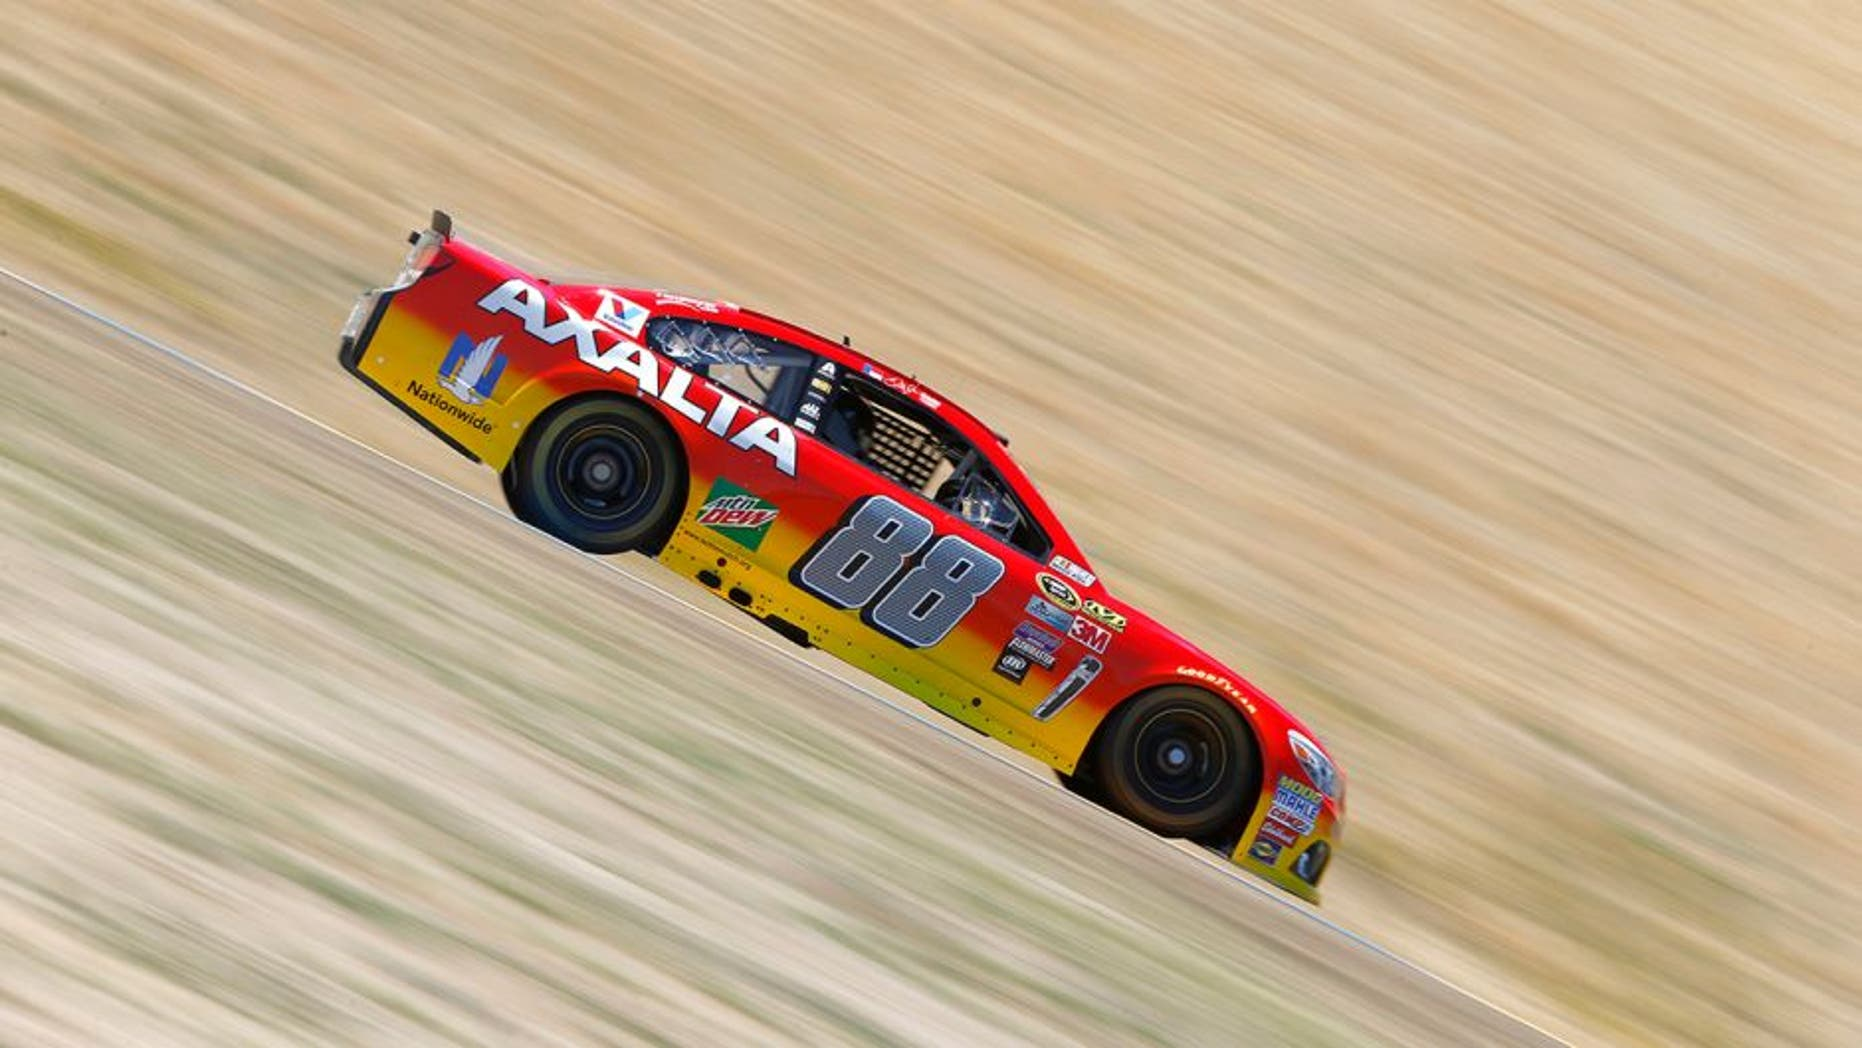 SONOMA, CA - JUNE 24: Dale Earnhardt Jr, driver of the #88 Axalta Chevrolet, drives during practice for the NASCAR Sprint Cup Series Toyota/Save Mart 350 at Sonoma Raceway on June 24, 2016 in Sonoma, California. (Photo by Jonathan Ferrey/Getty Images)